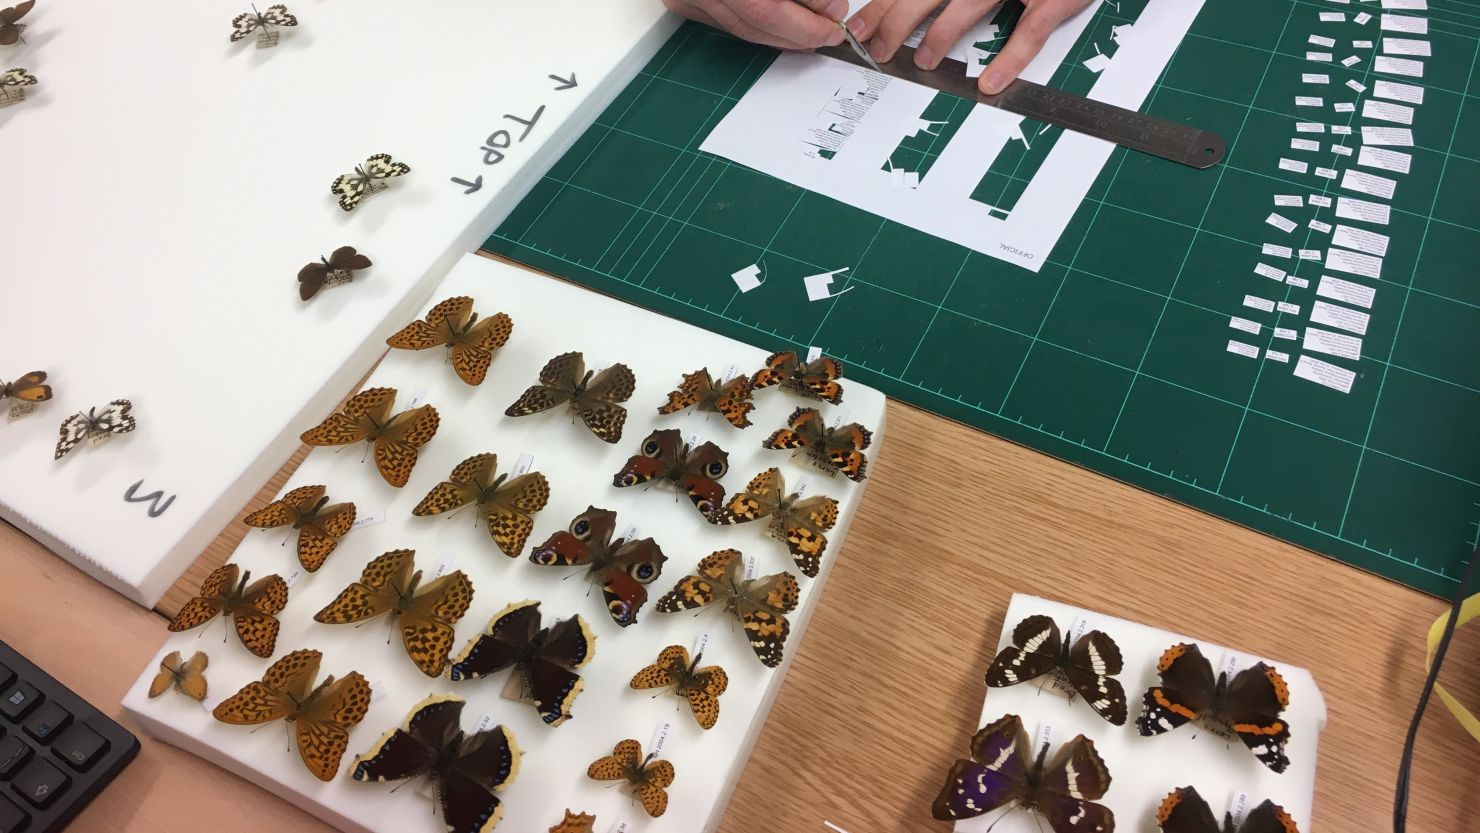 A person pinning butterflies from a natural history collection ready for display